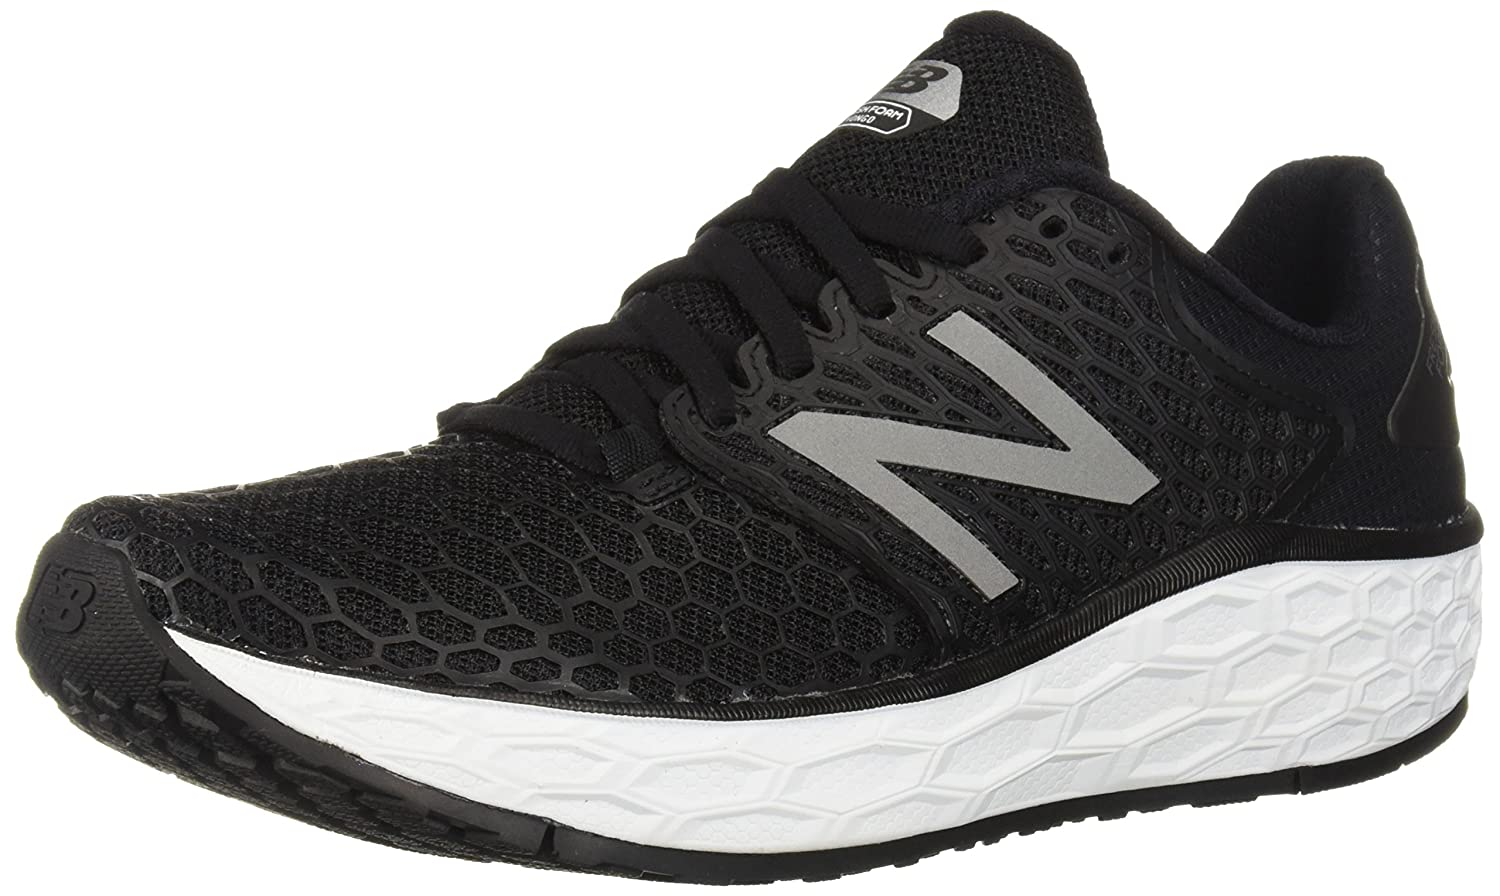 New Balance Women's Vongo V3 Fresh Foam Running Shoe B075R84D1N 8 D US|Black